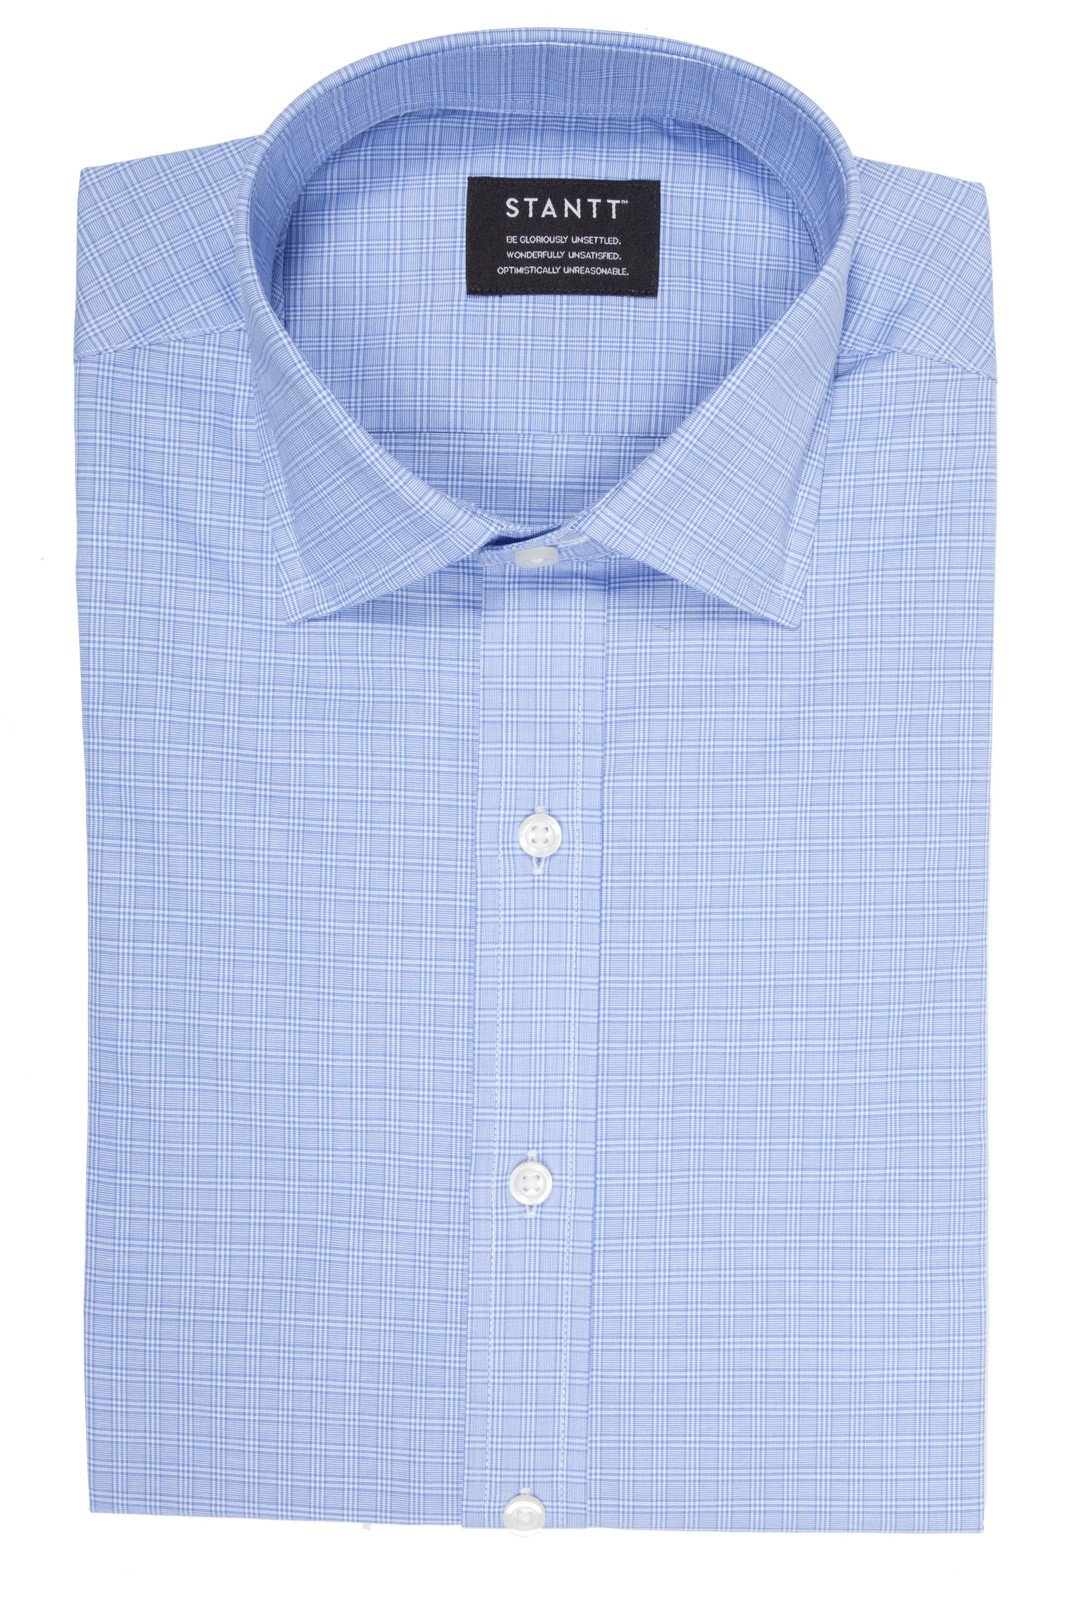 Light Blue Mini Raker Check: Modified-Spread Collar, French Cuff